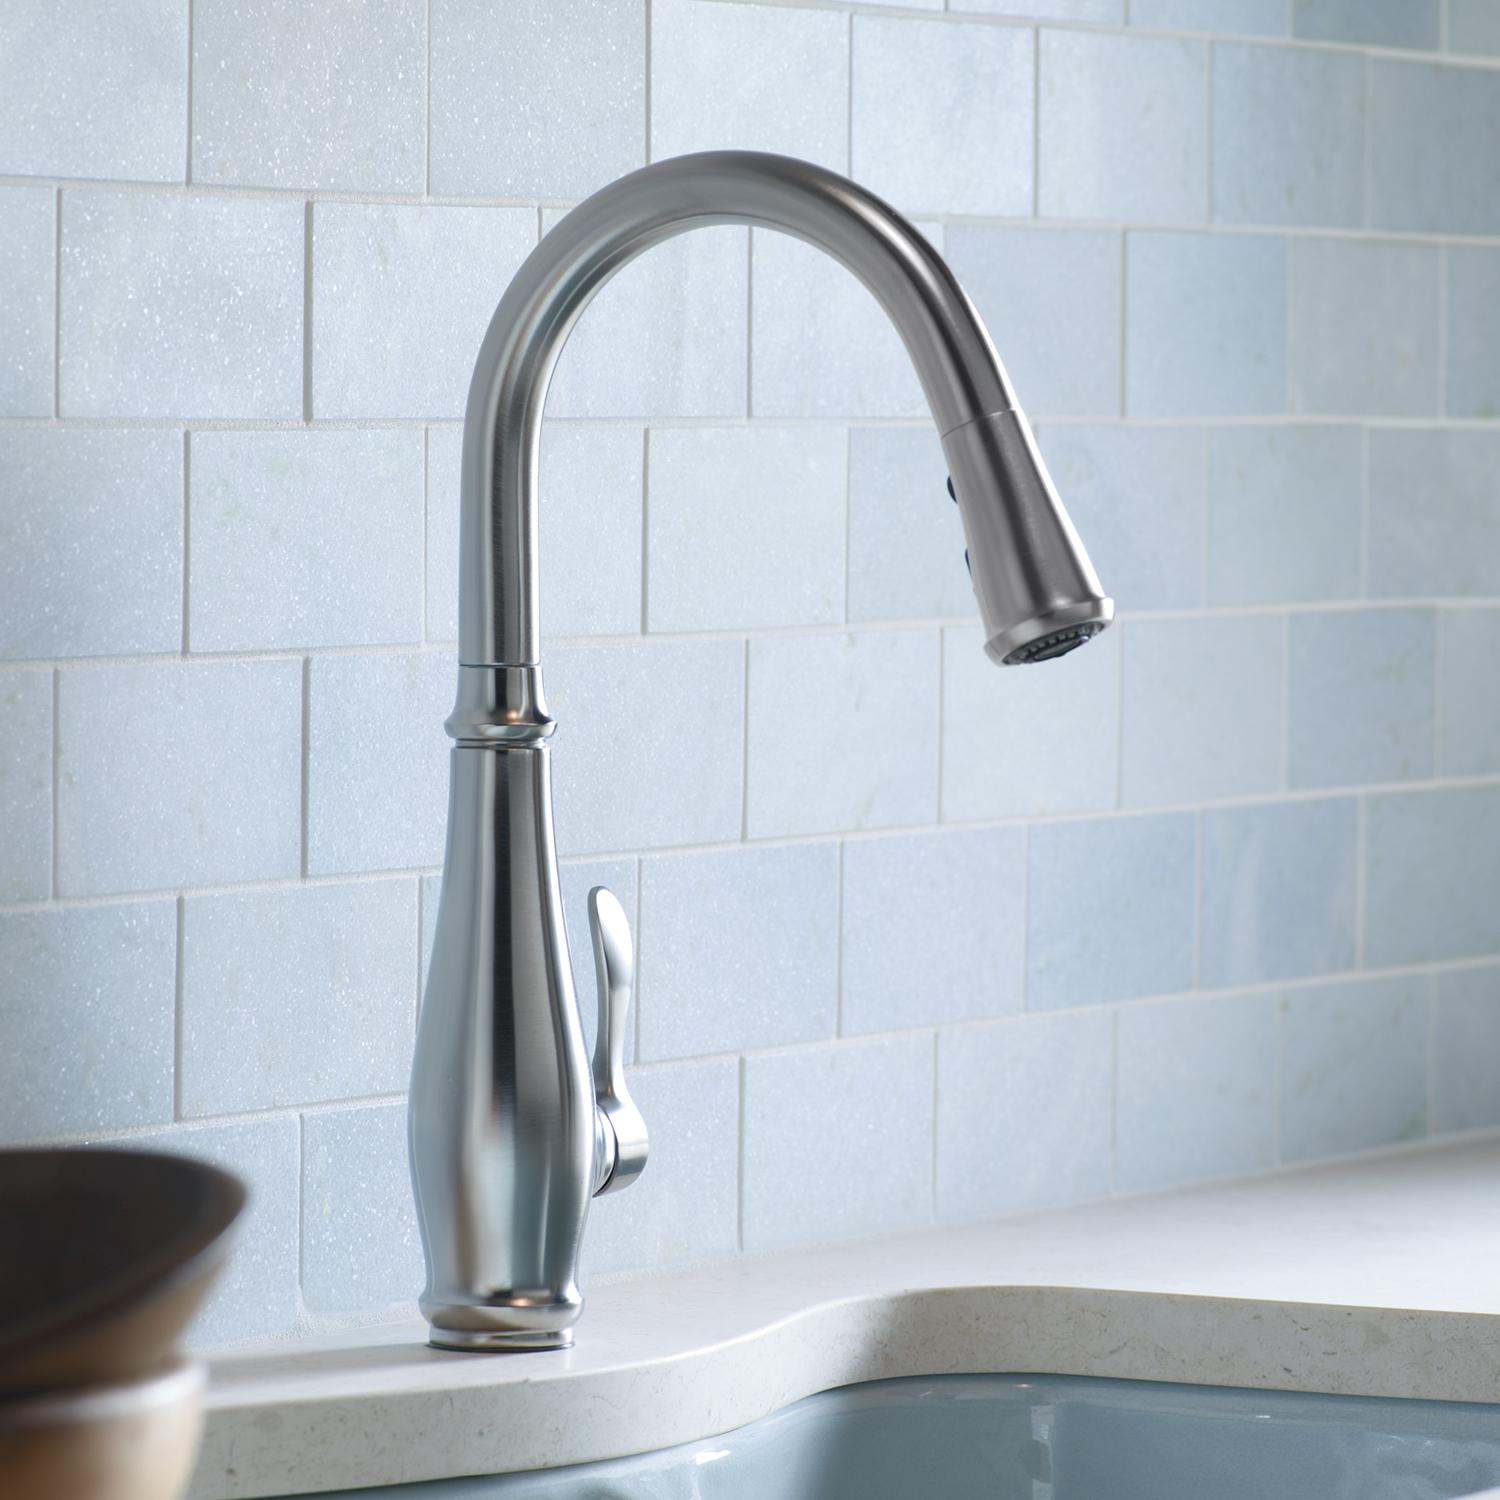 the kohler kitchen to touch best faucet carroll brenda hands free according faucets